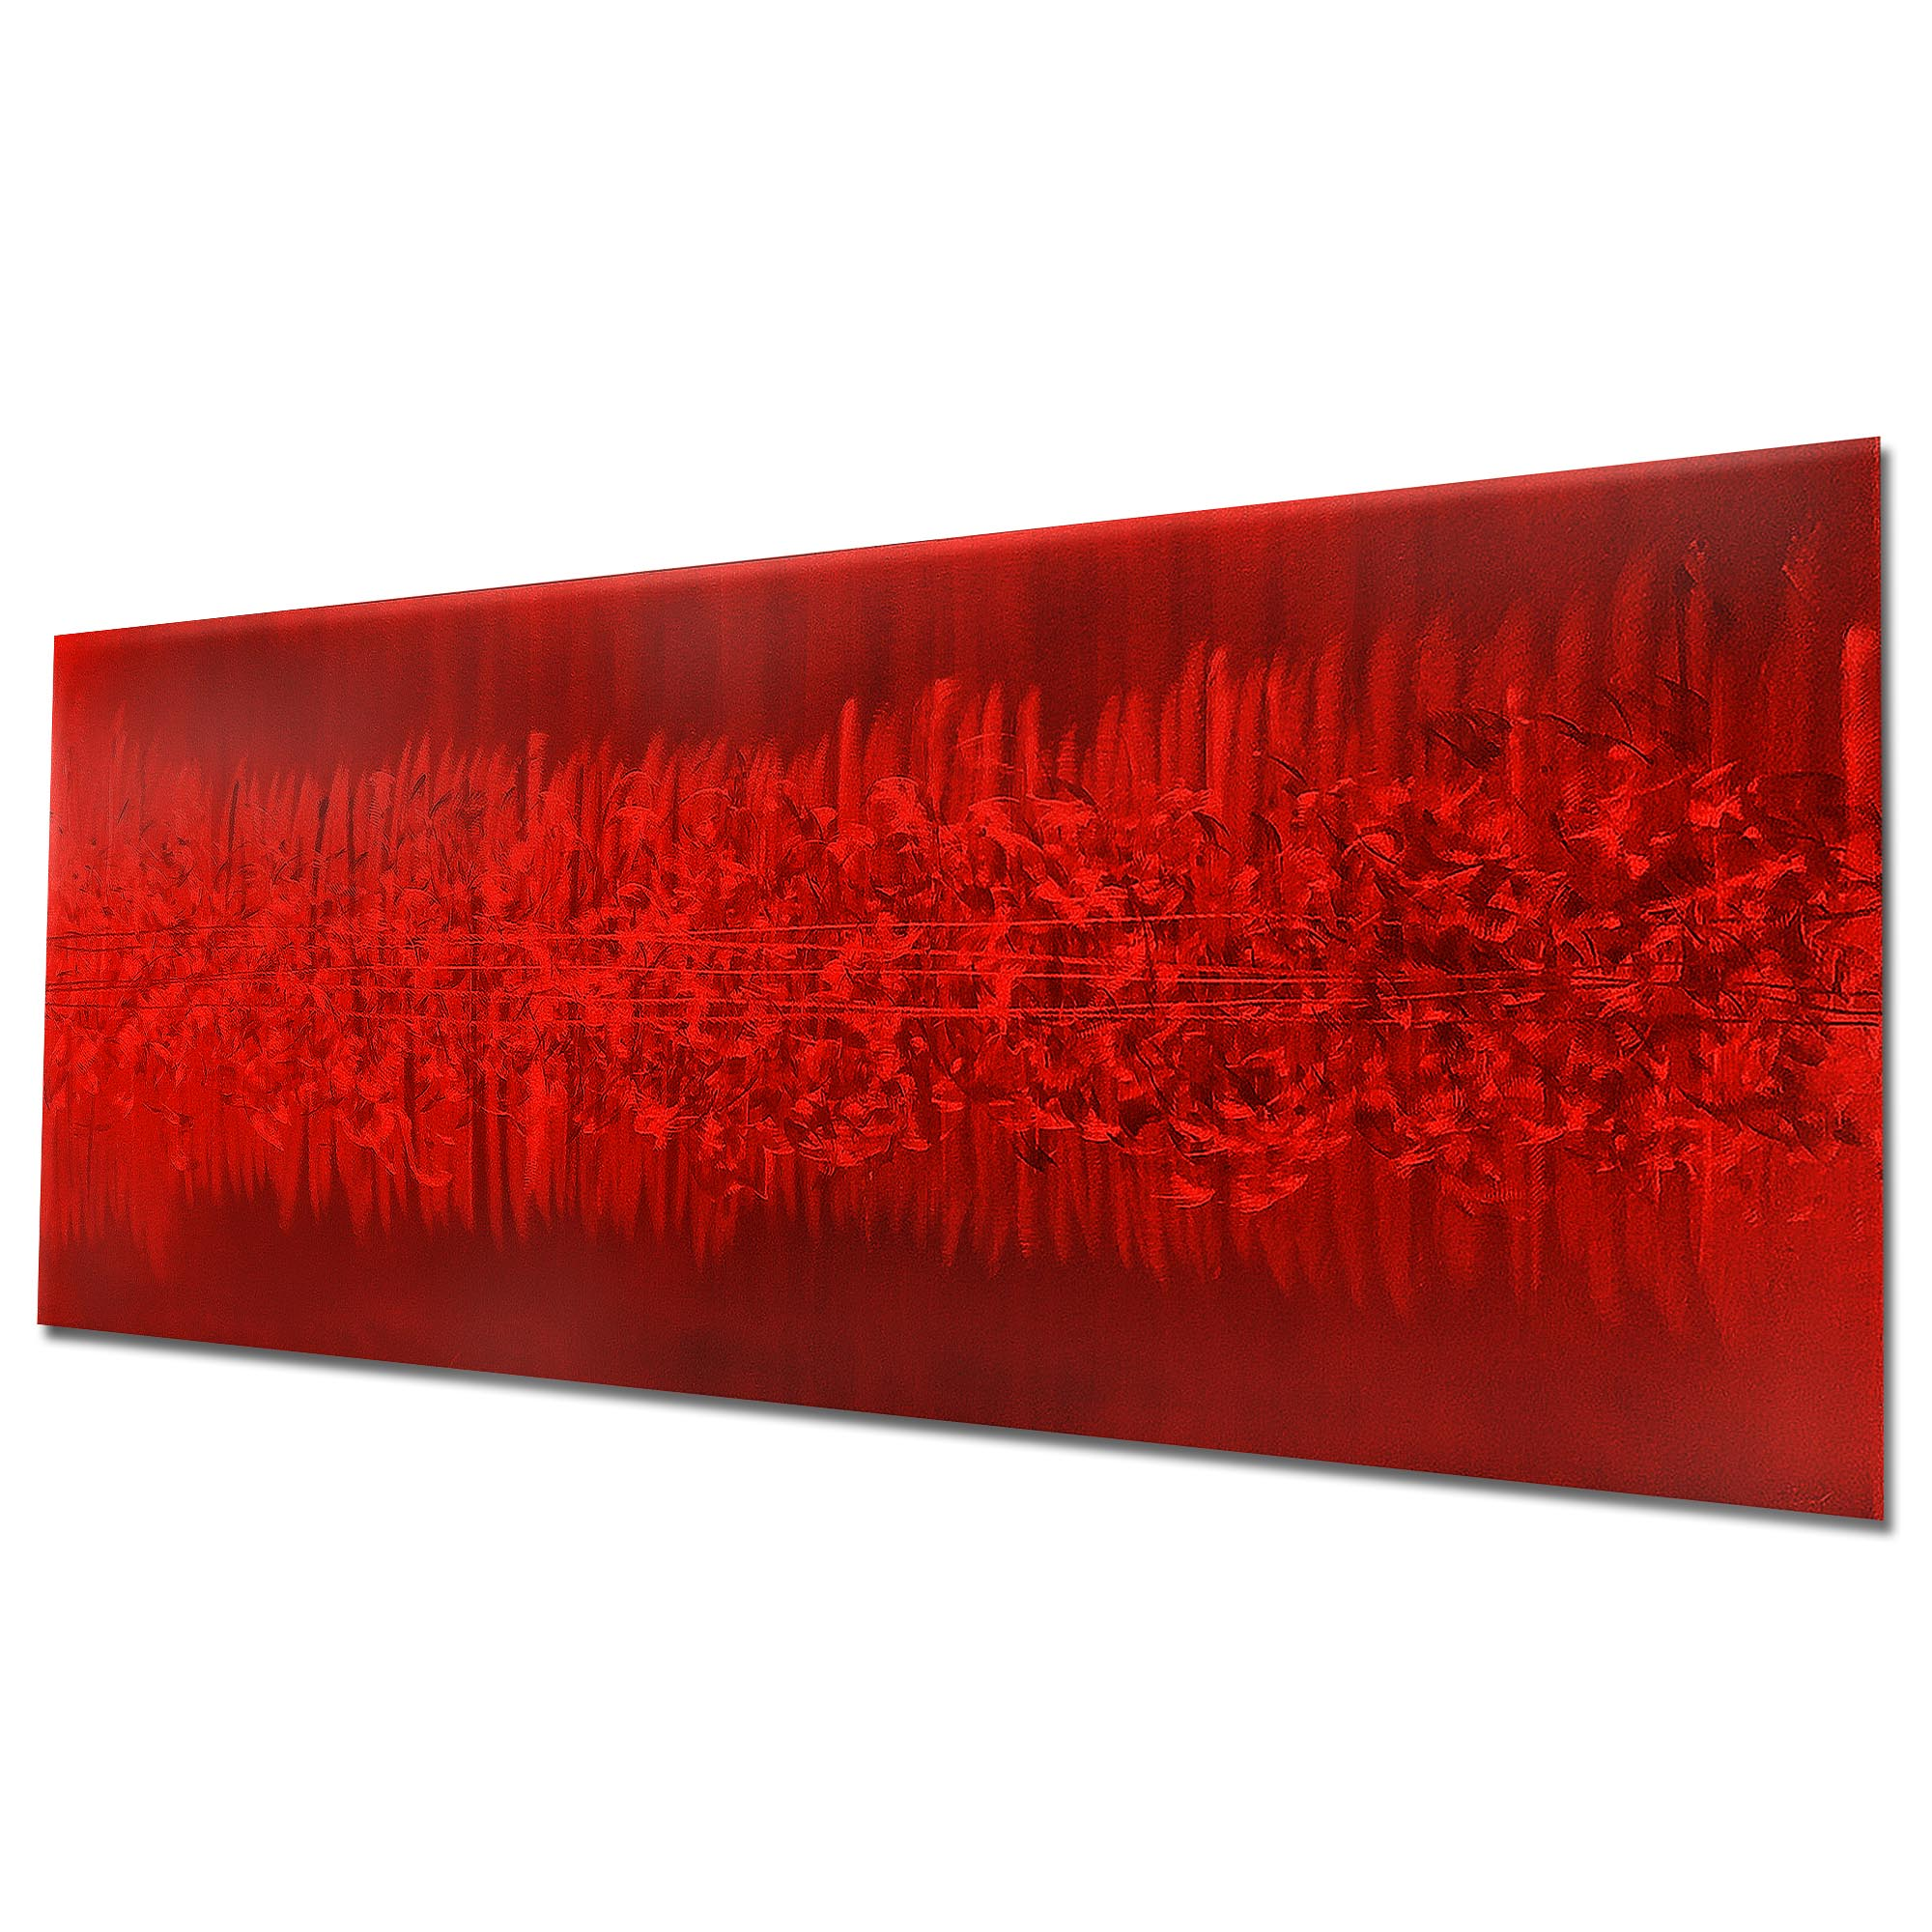 Static Red by Helena Martin - Original Abstract Art on Ground and Painted Metal - Image 3